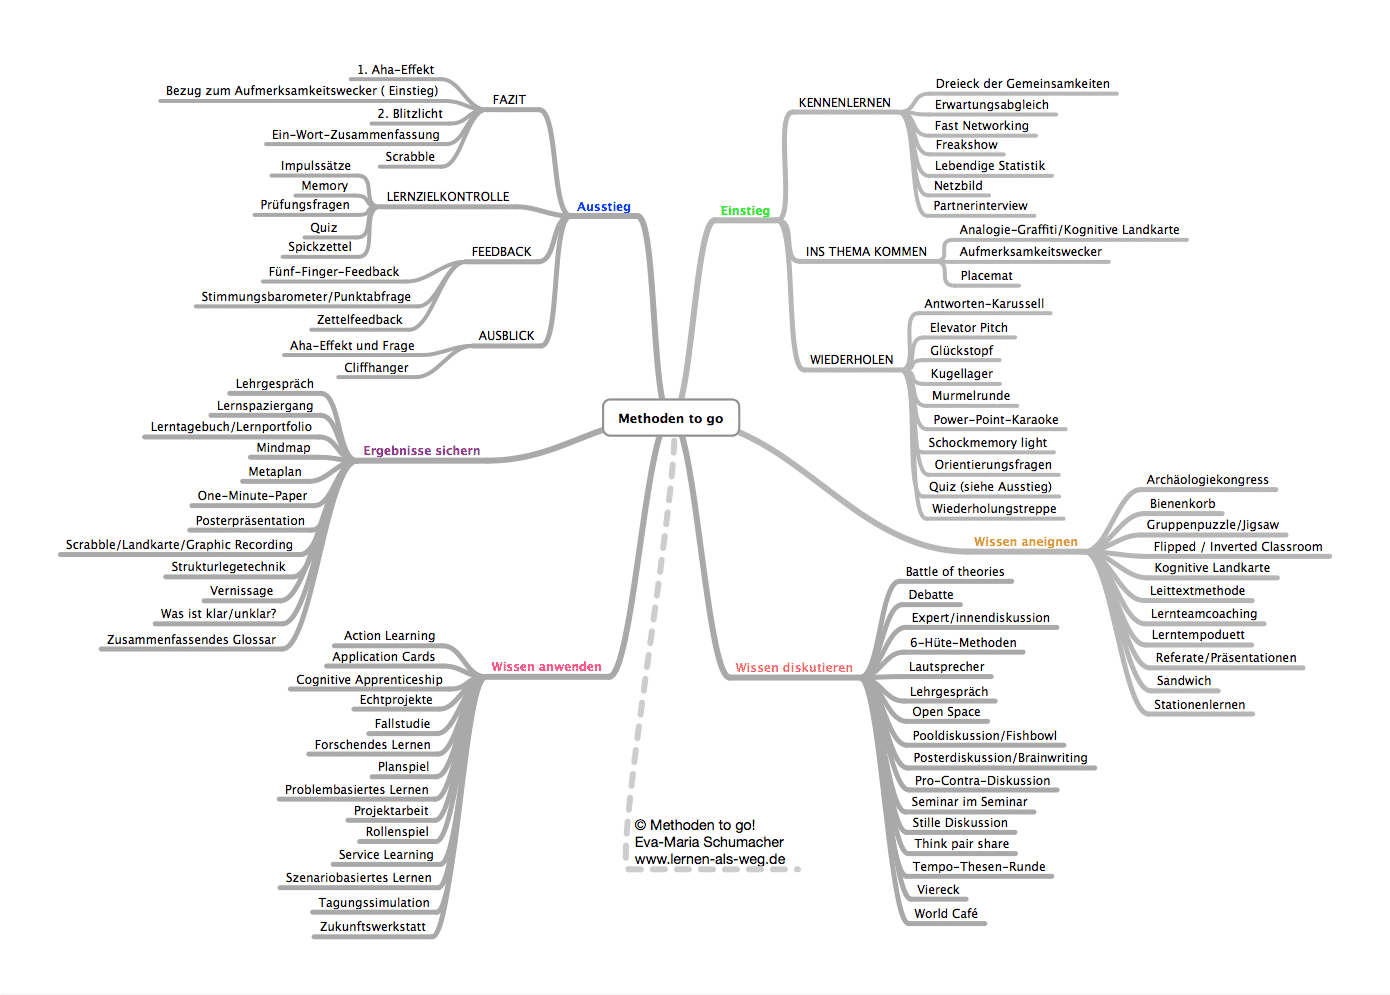 Mindmap Methoden to go